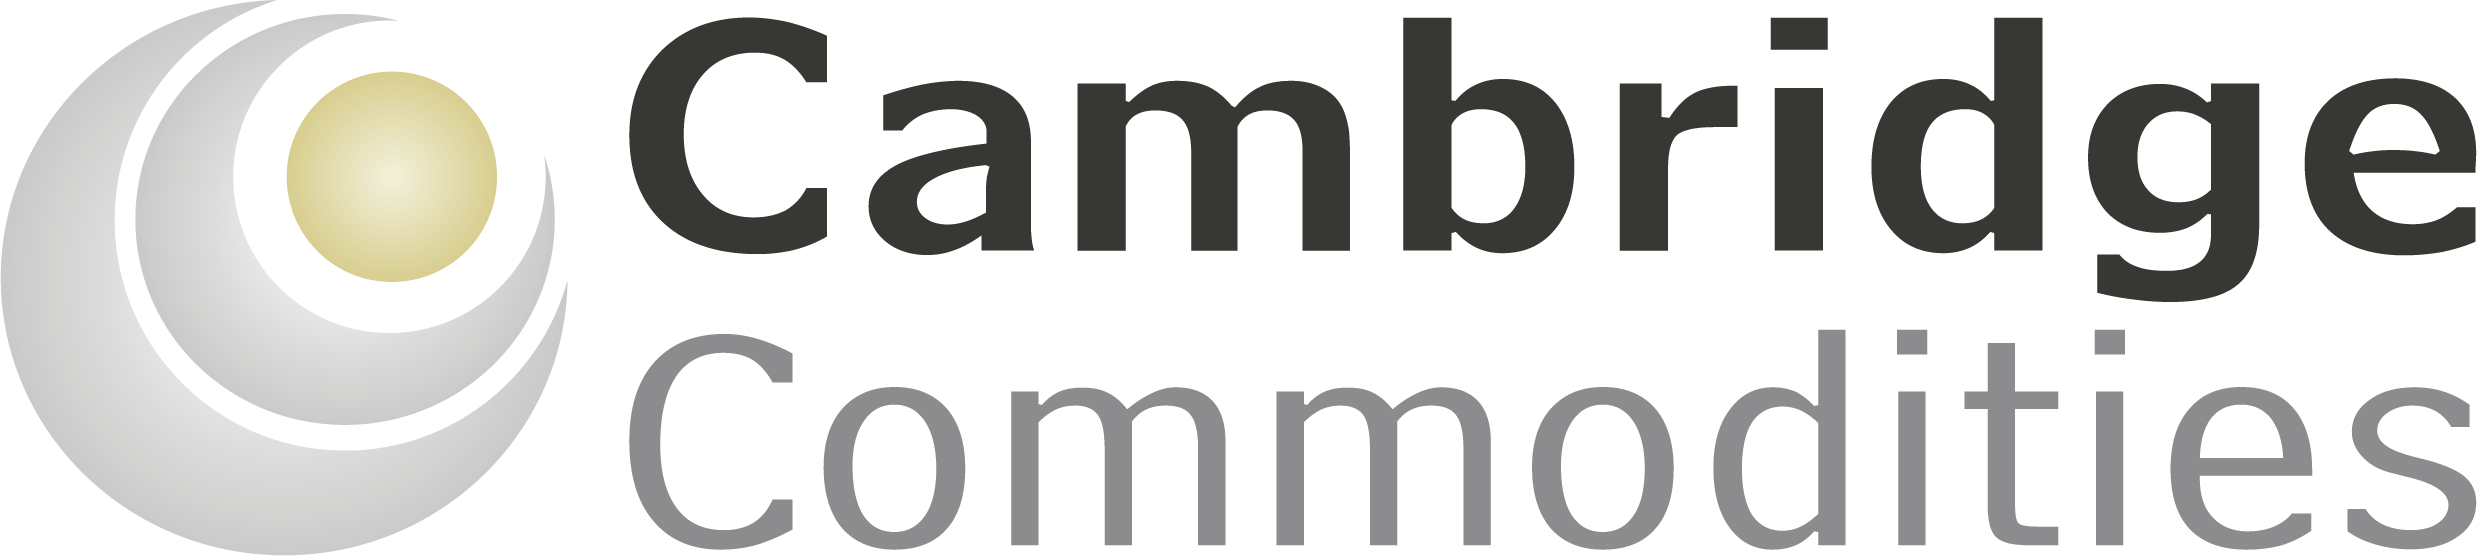 Cambridge Commodities Ltd